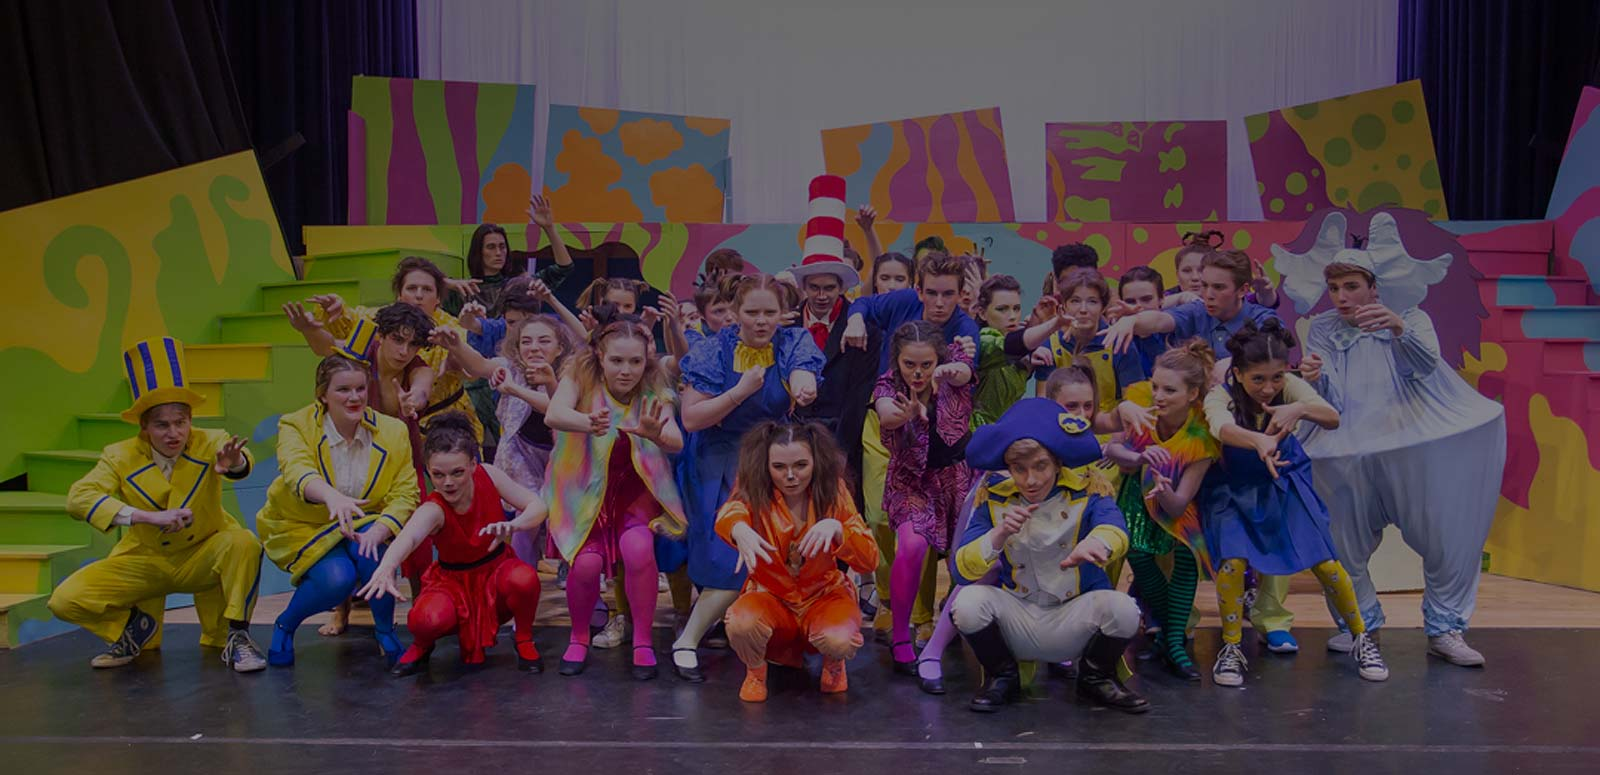 images/slideshow/wahi-drama-seussical-2019.jpg